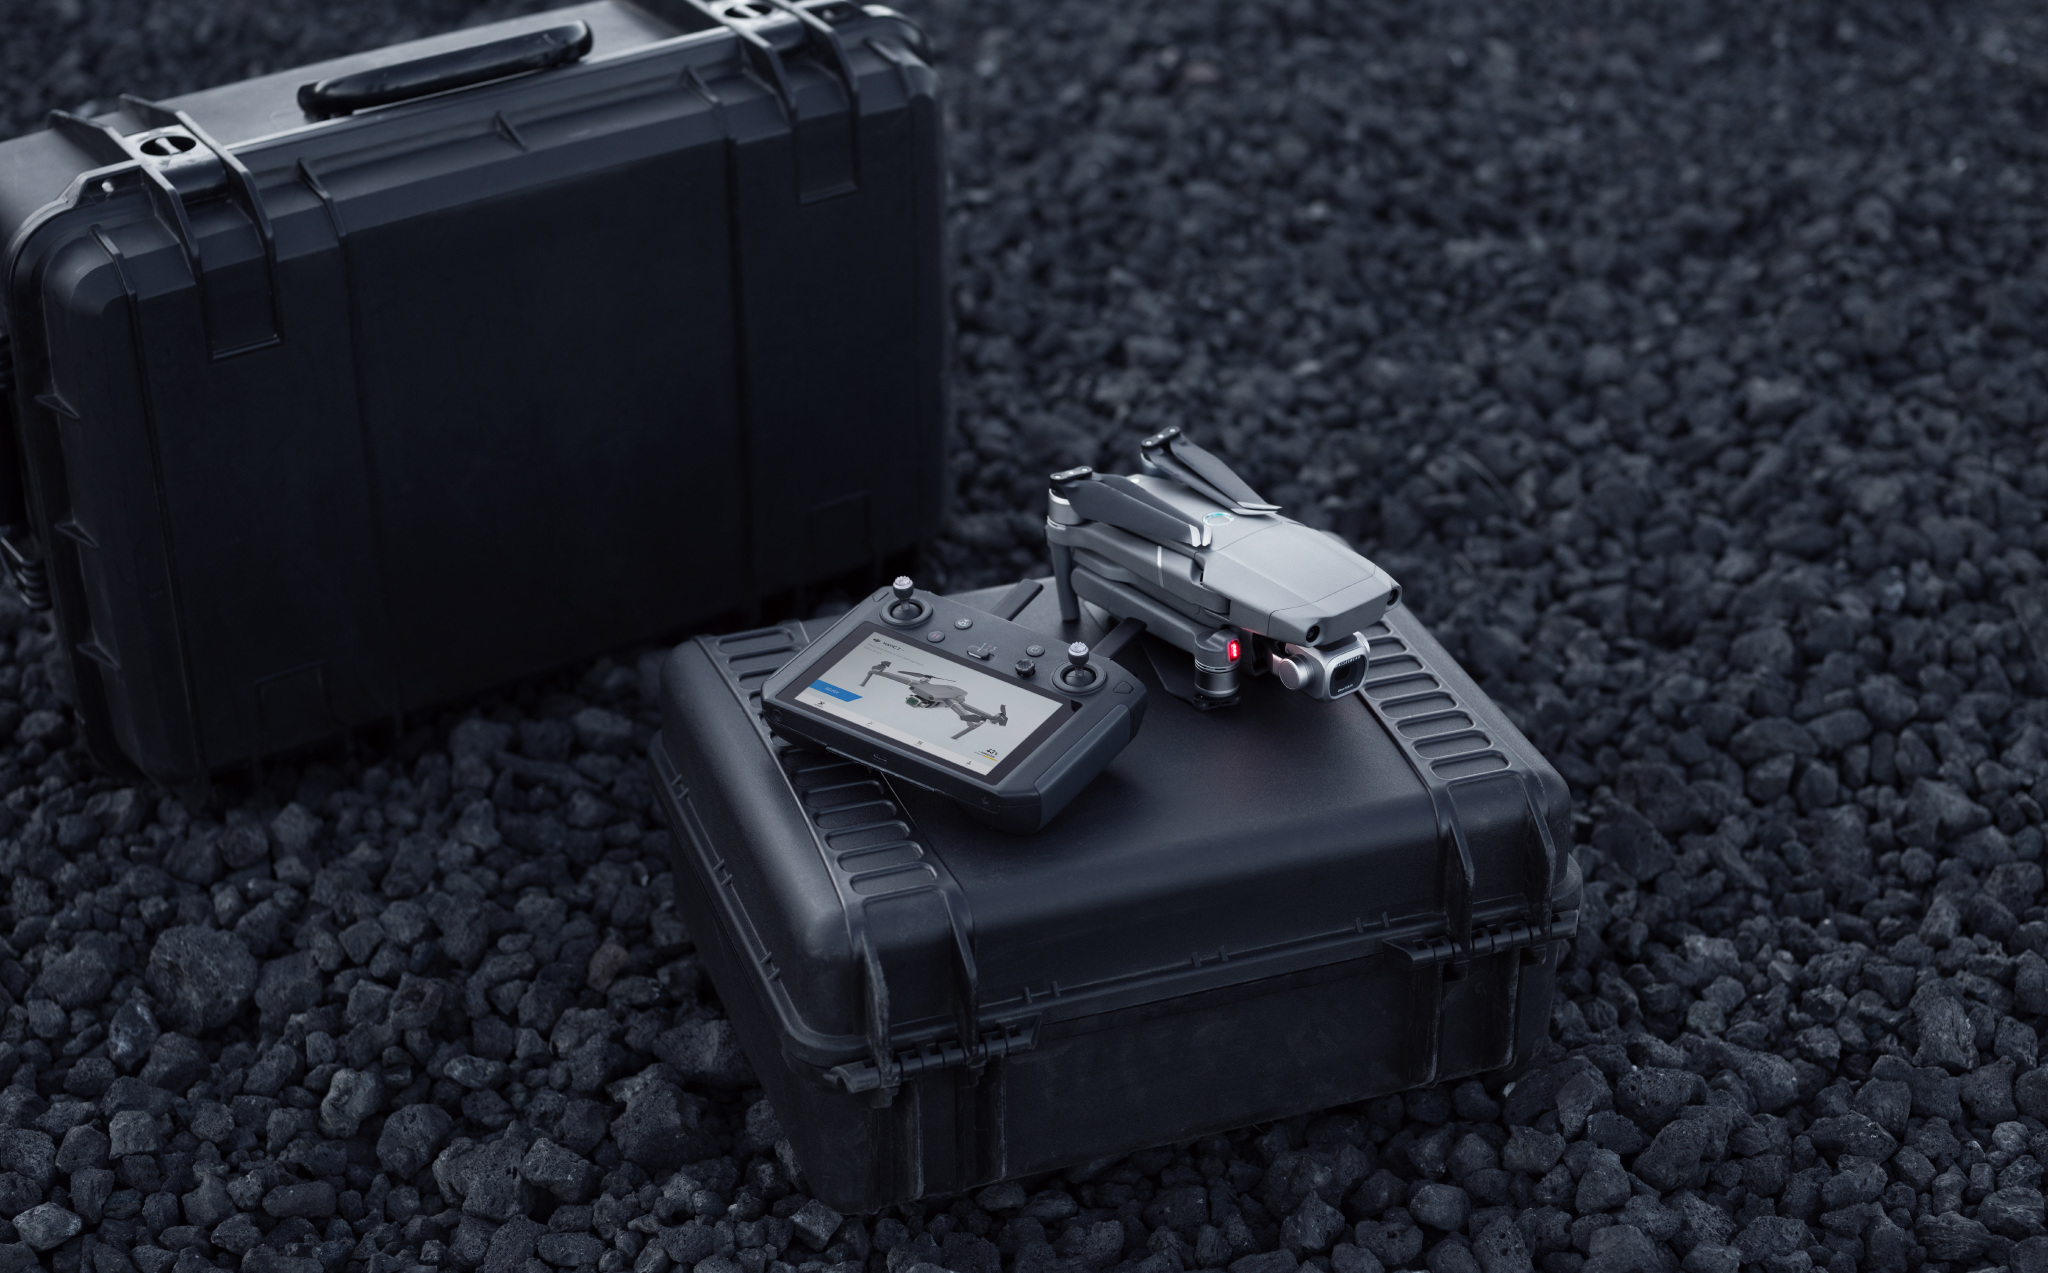 DJI Smart Controller for the Mavic 2 Pro and Mavic 2 Zoom - Newsshooter